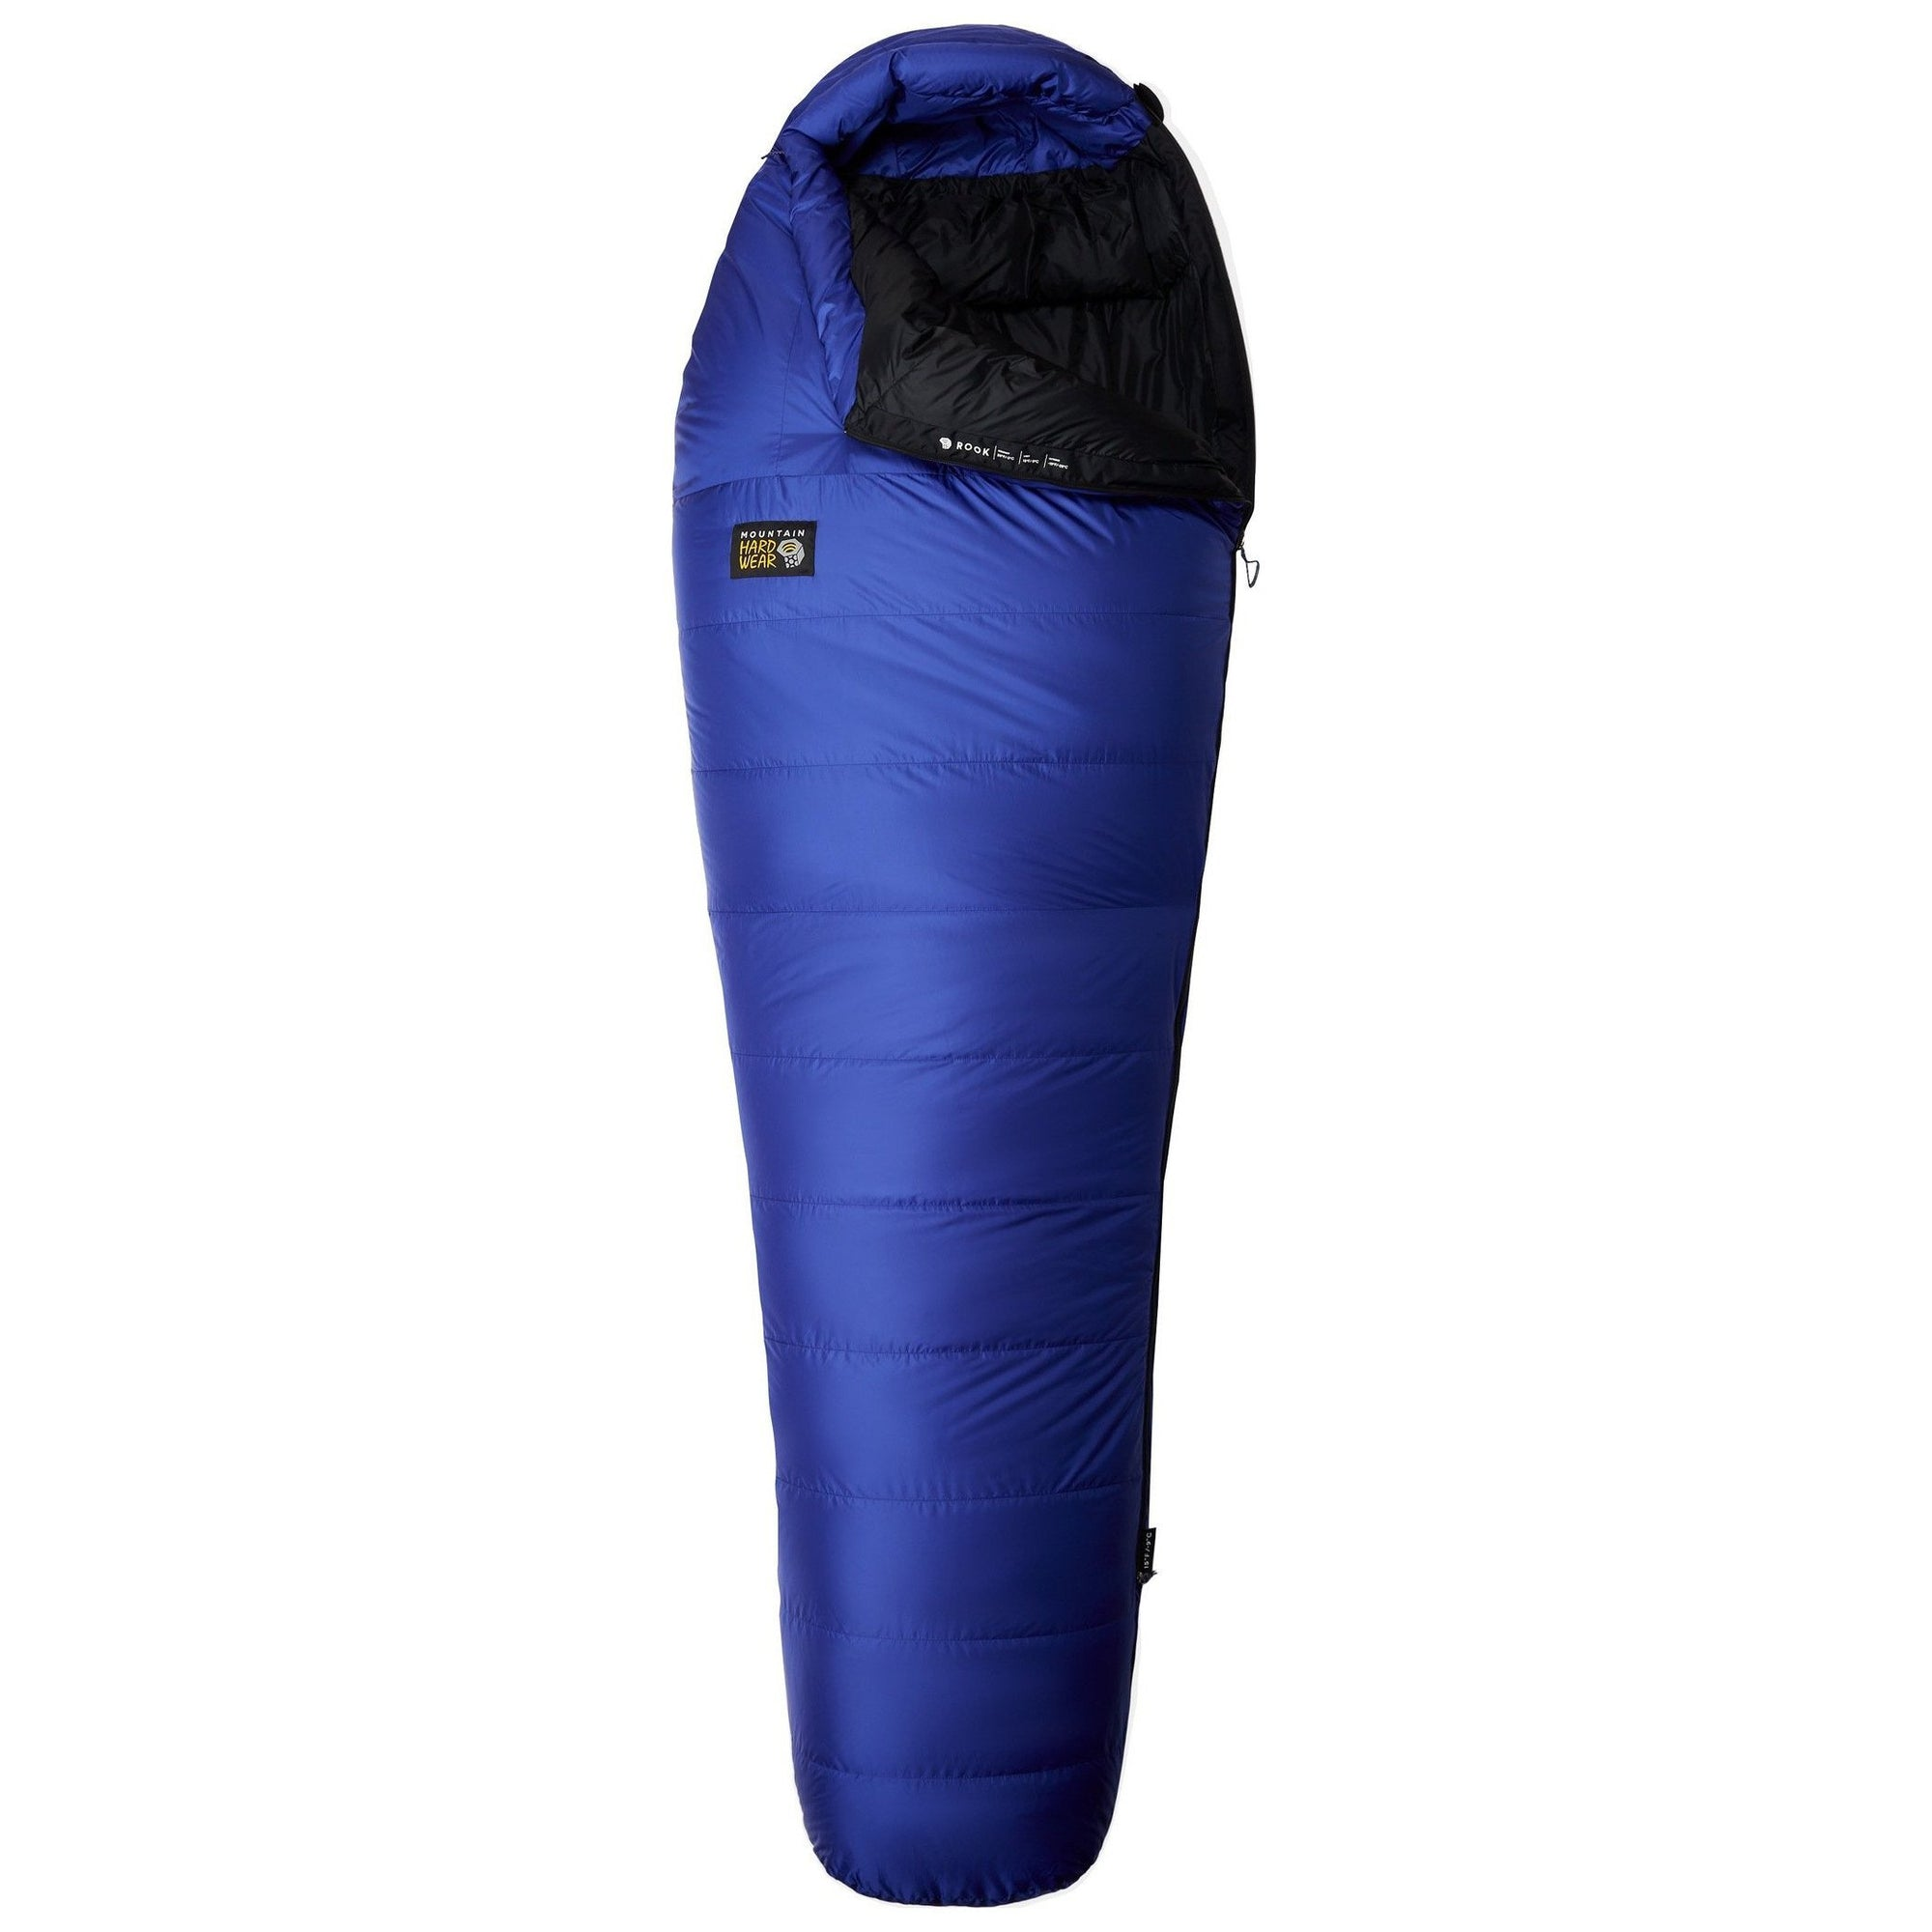 Mountain Hardwear's Rook™ Sleeping Bag is an all-rounder for any camper seeking versatility and performance.